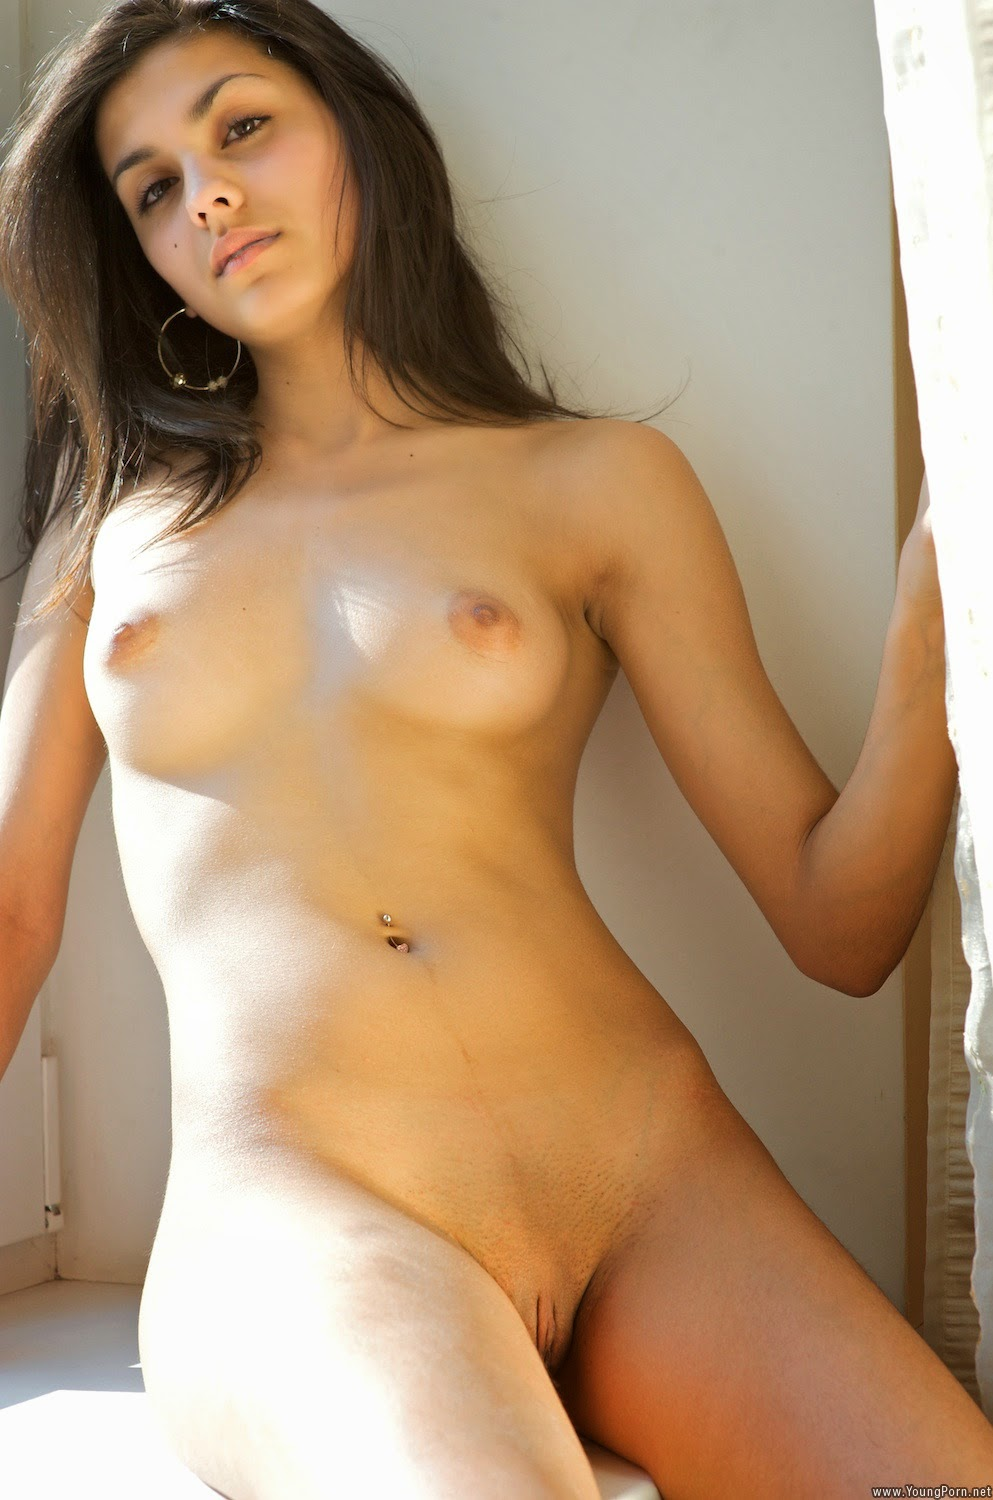 will free interracial slut story for that interfere here